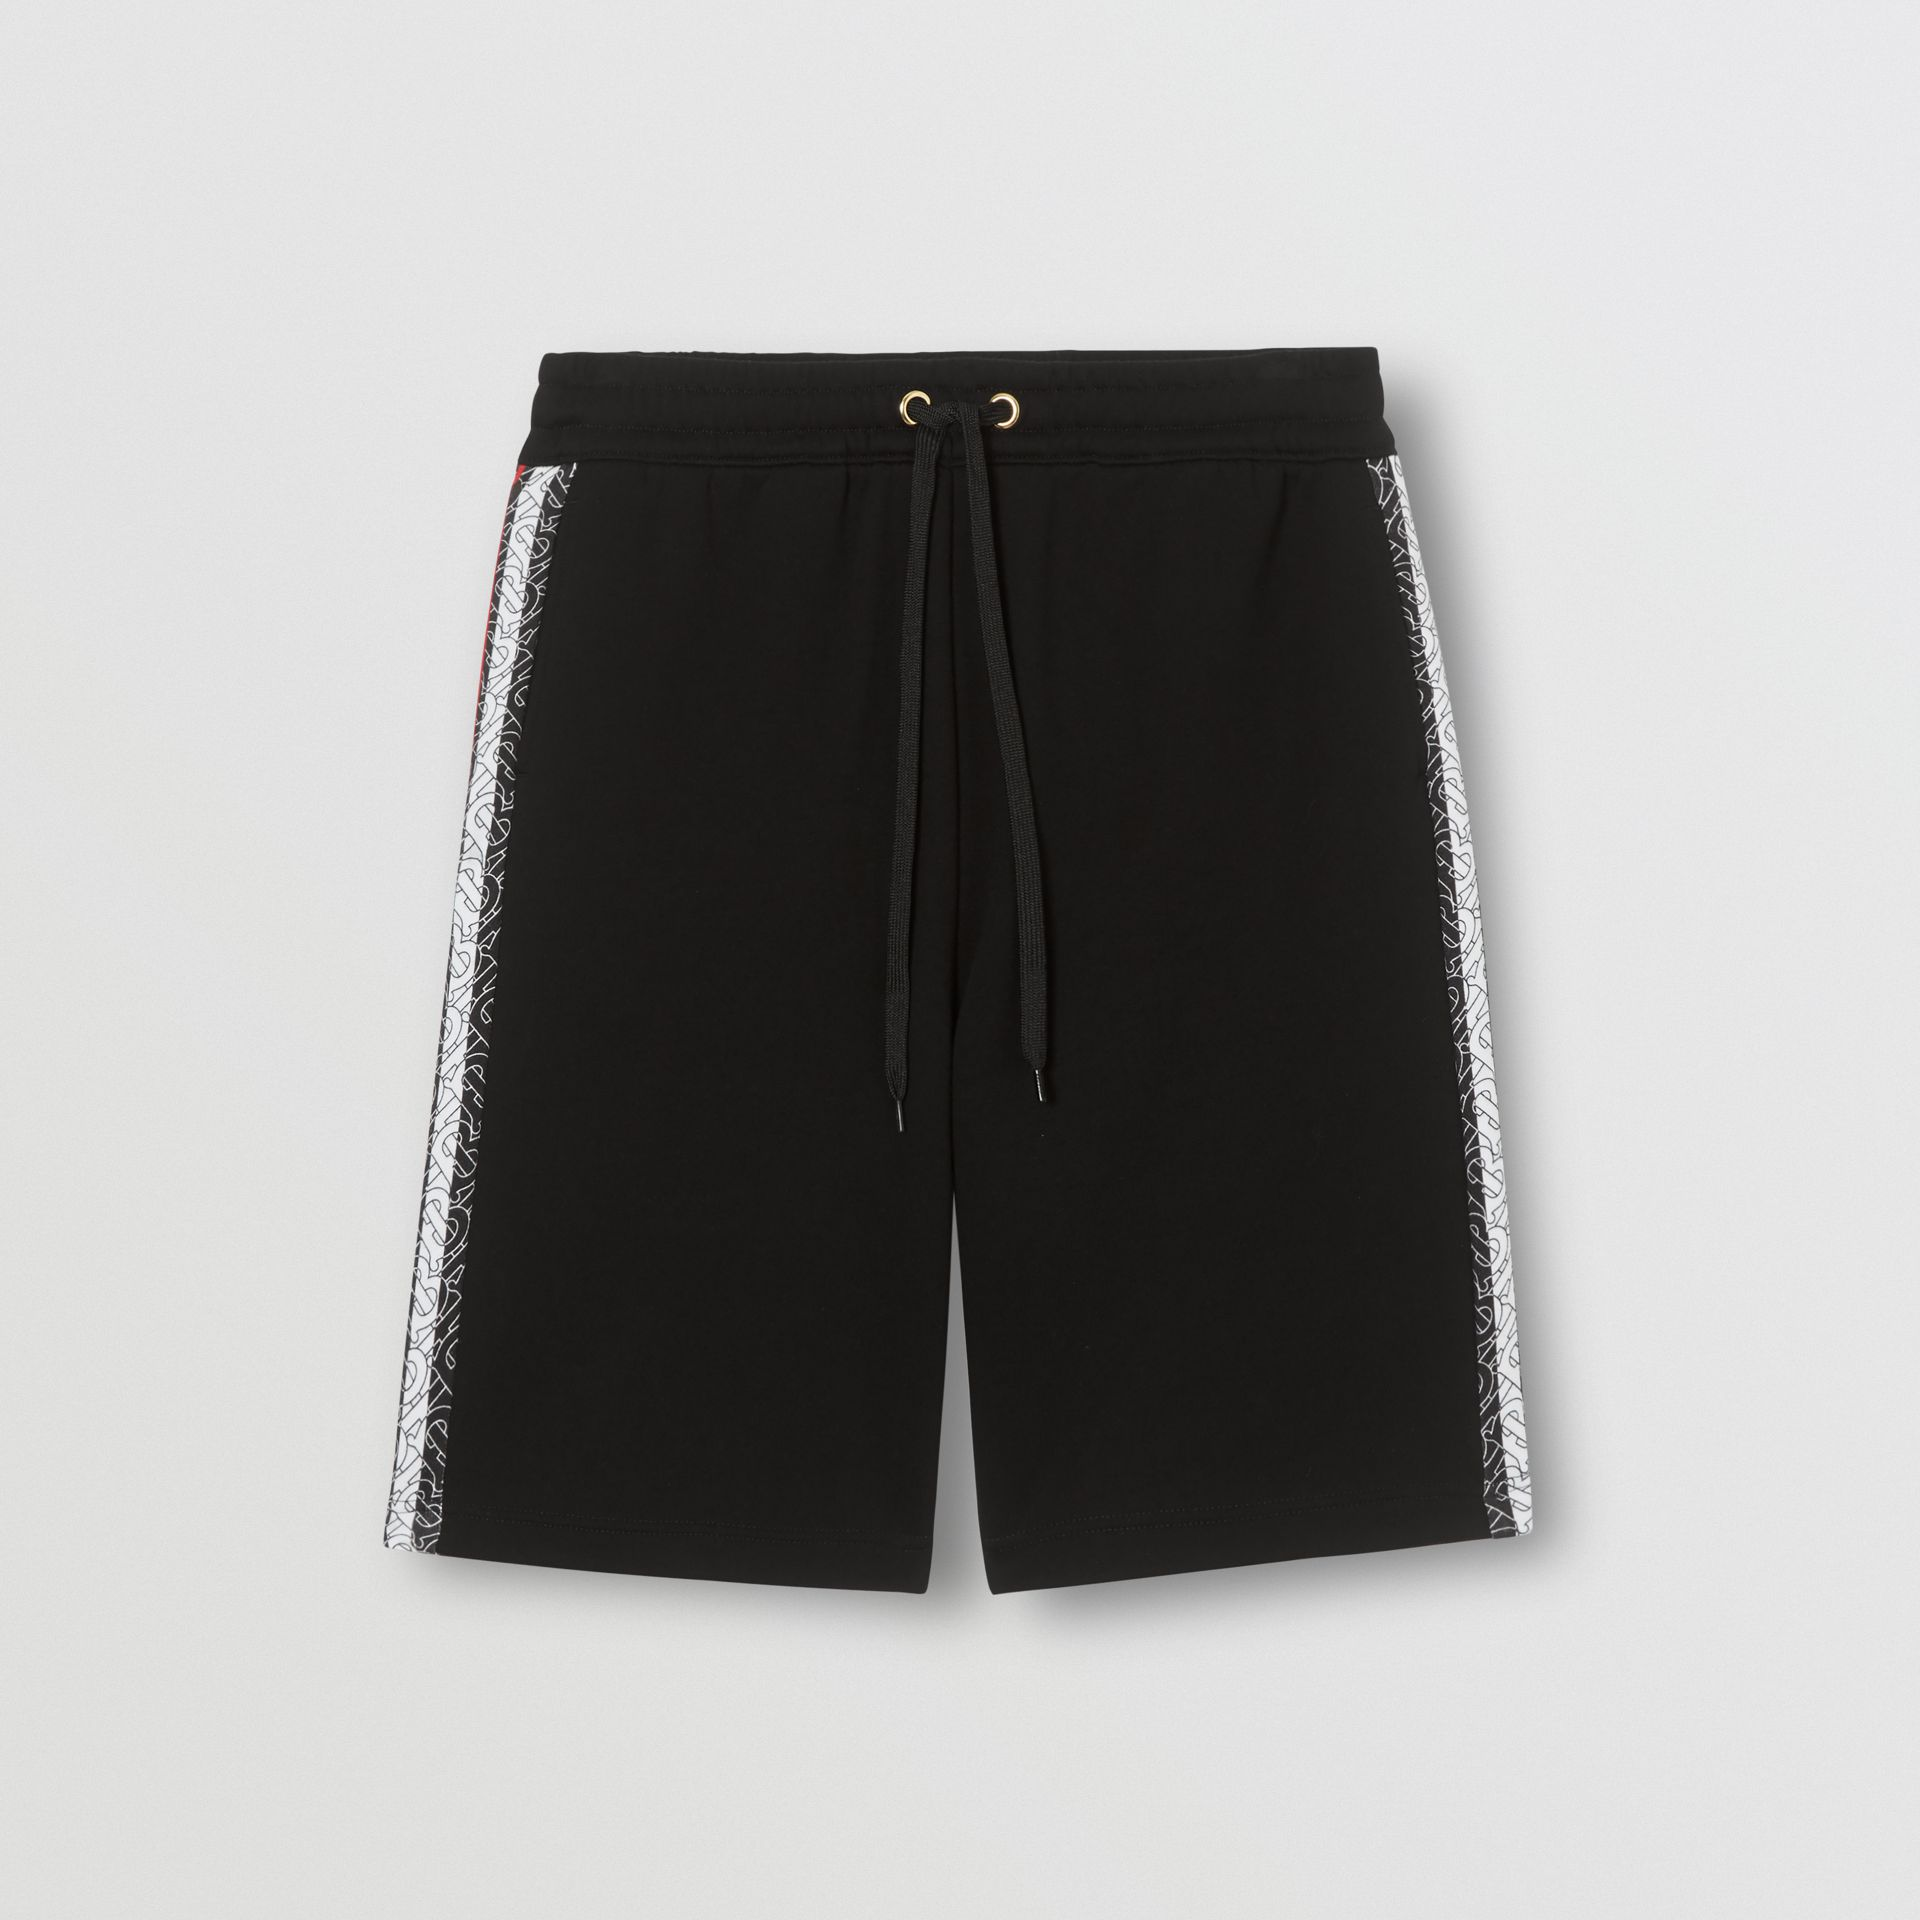 Monogram Stripe Print Cotton Shorts in Black - Men | Burberry - gallery image 3